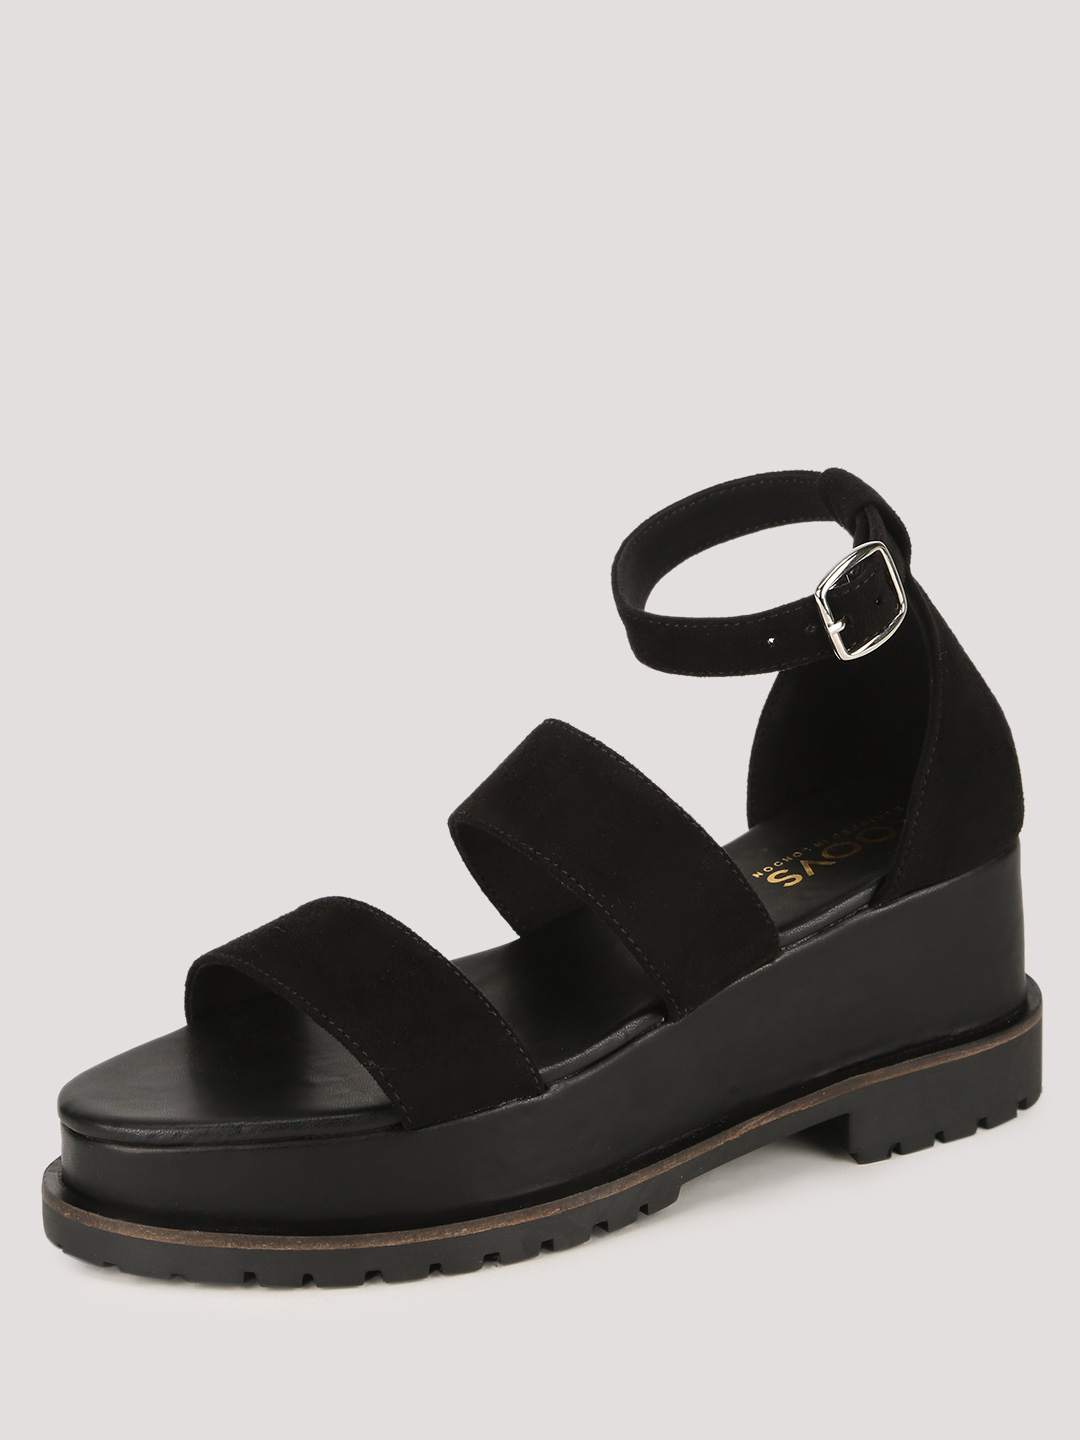 KOOVS 3 Strap Wedges With Cleated Sole